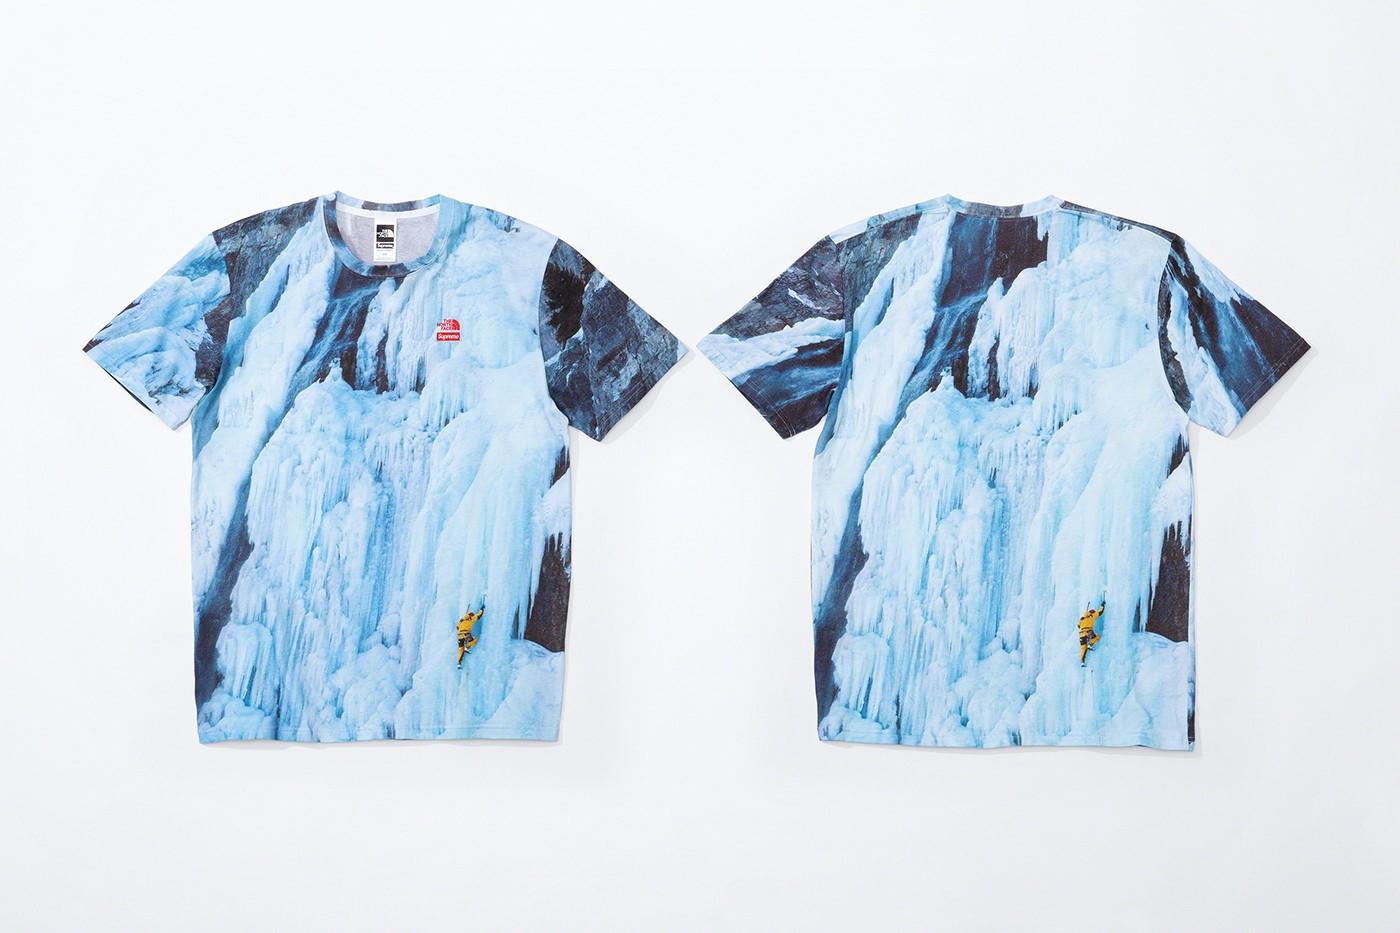 Supreme x The North Face SS21 Collection Collaboration Nuptse Jacket